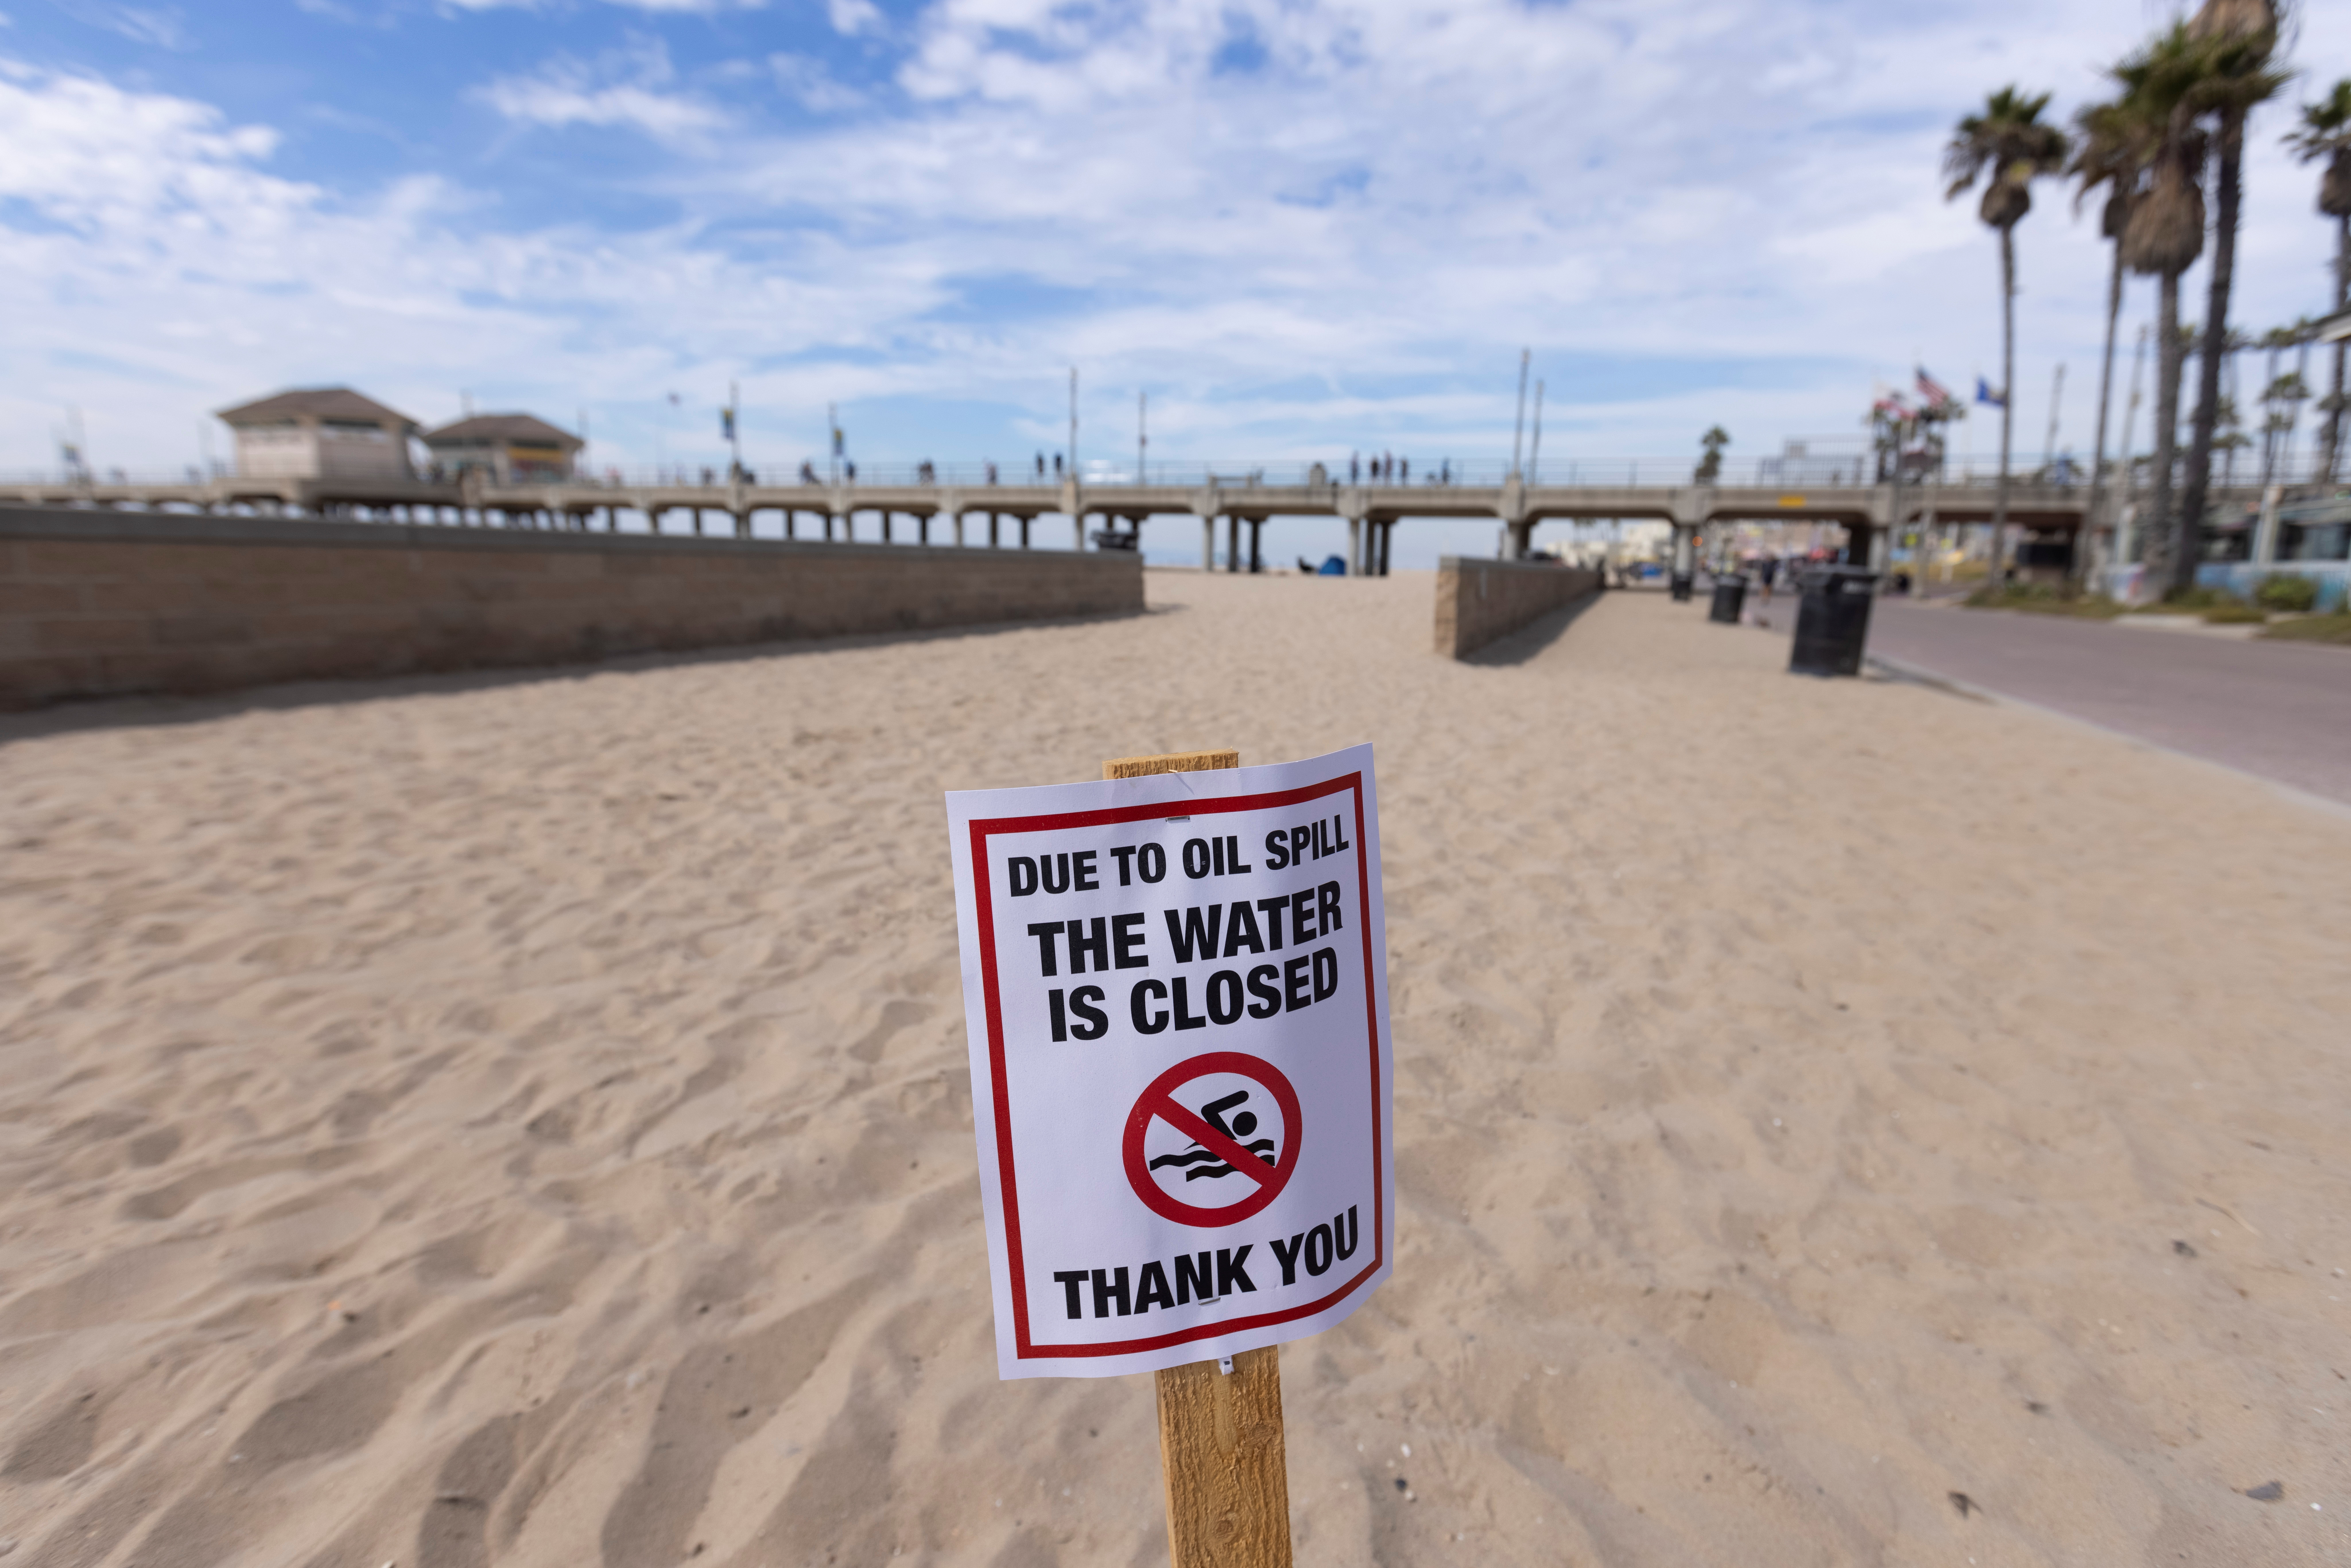 A warning sign is posted for people to stay out of the water after a major oil spill off the coast of California came ashore in Huntington Beach, California, U.S.,  October 4, 2021. REUTERS/Mike Blake